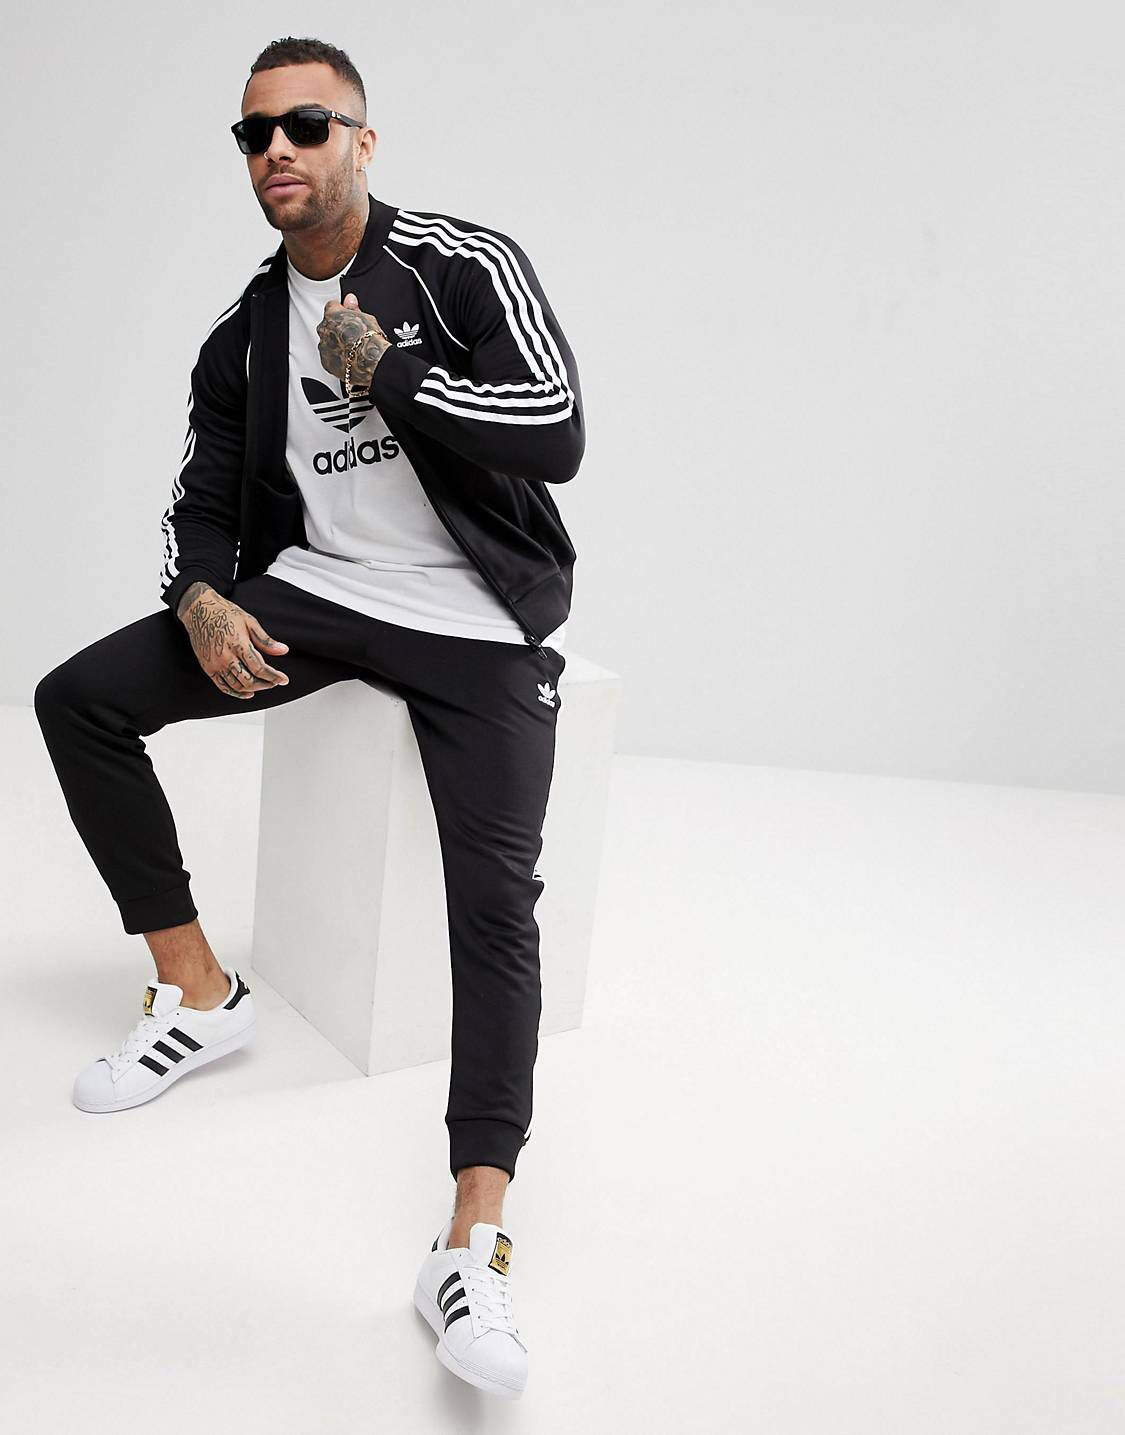 Men's Adidas Sale: Shoes, Clothing, & Backpacks | ASOS Outlet